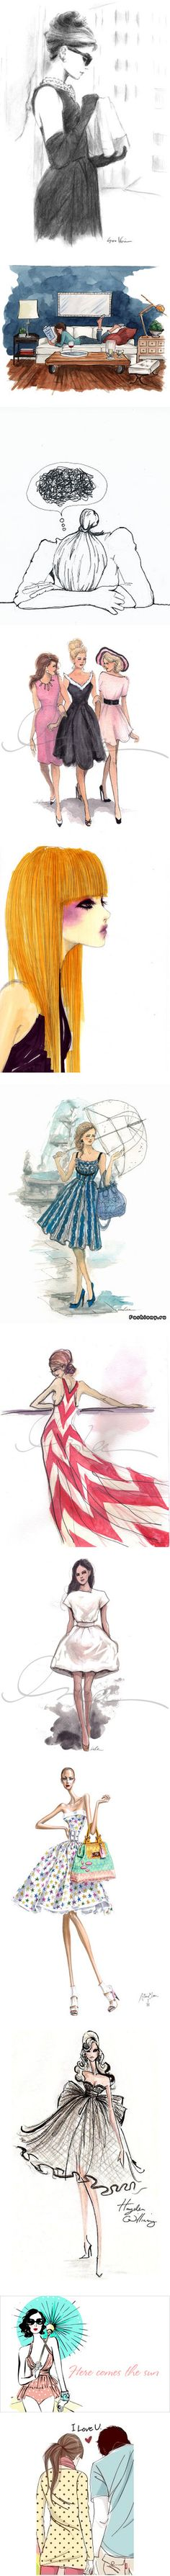 """""""Drawings women 4"""" by catgoddess on Polyvore. I want to learn how to draw fashion sketches like this. :)"""